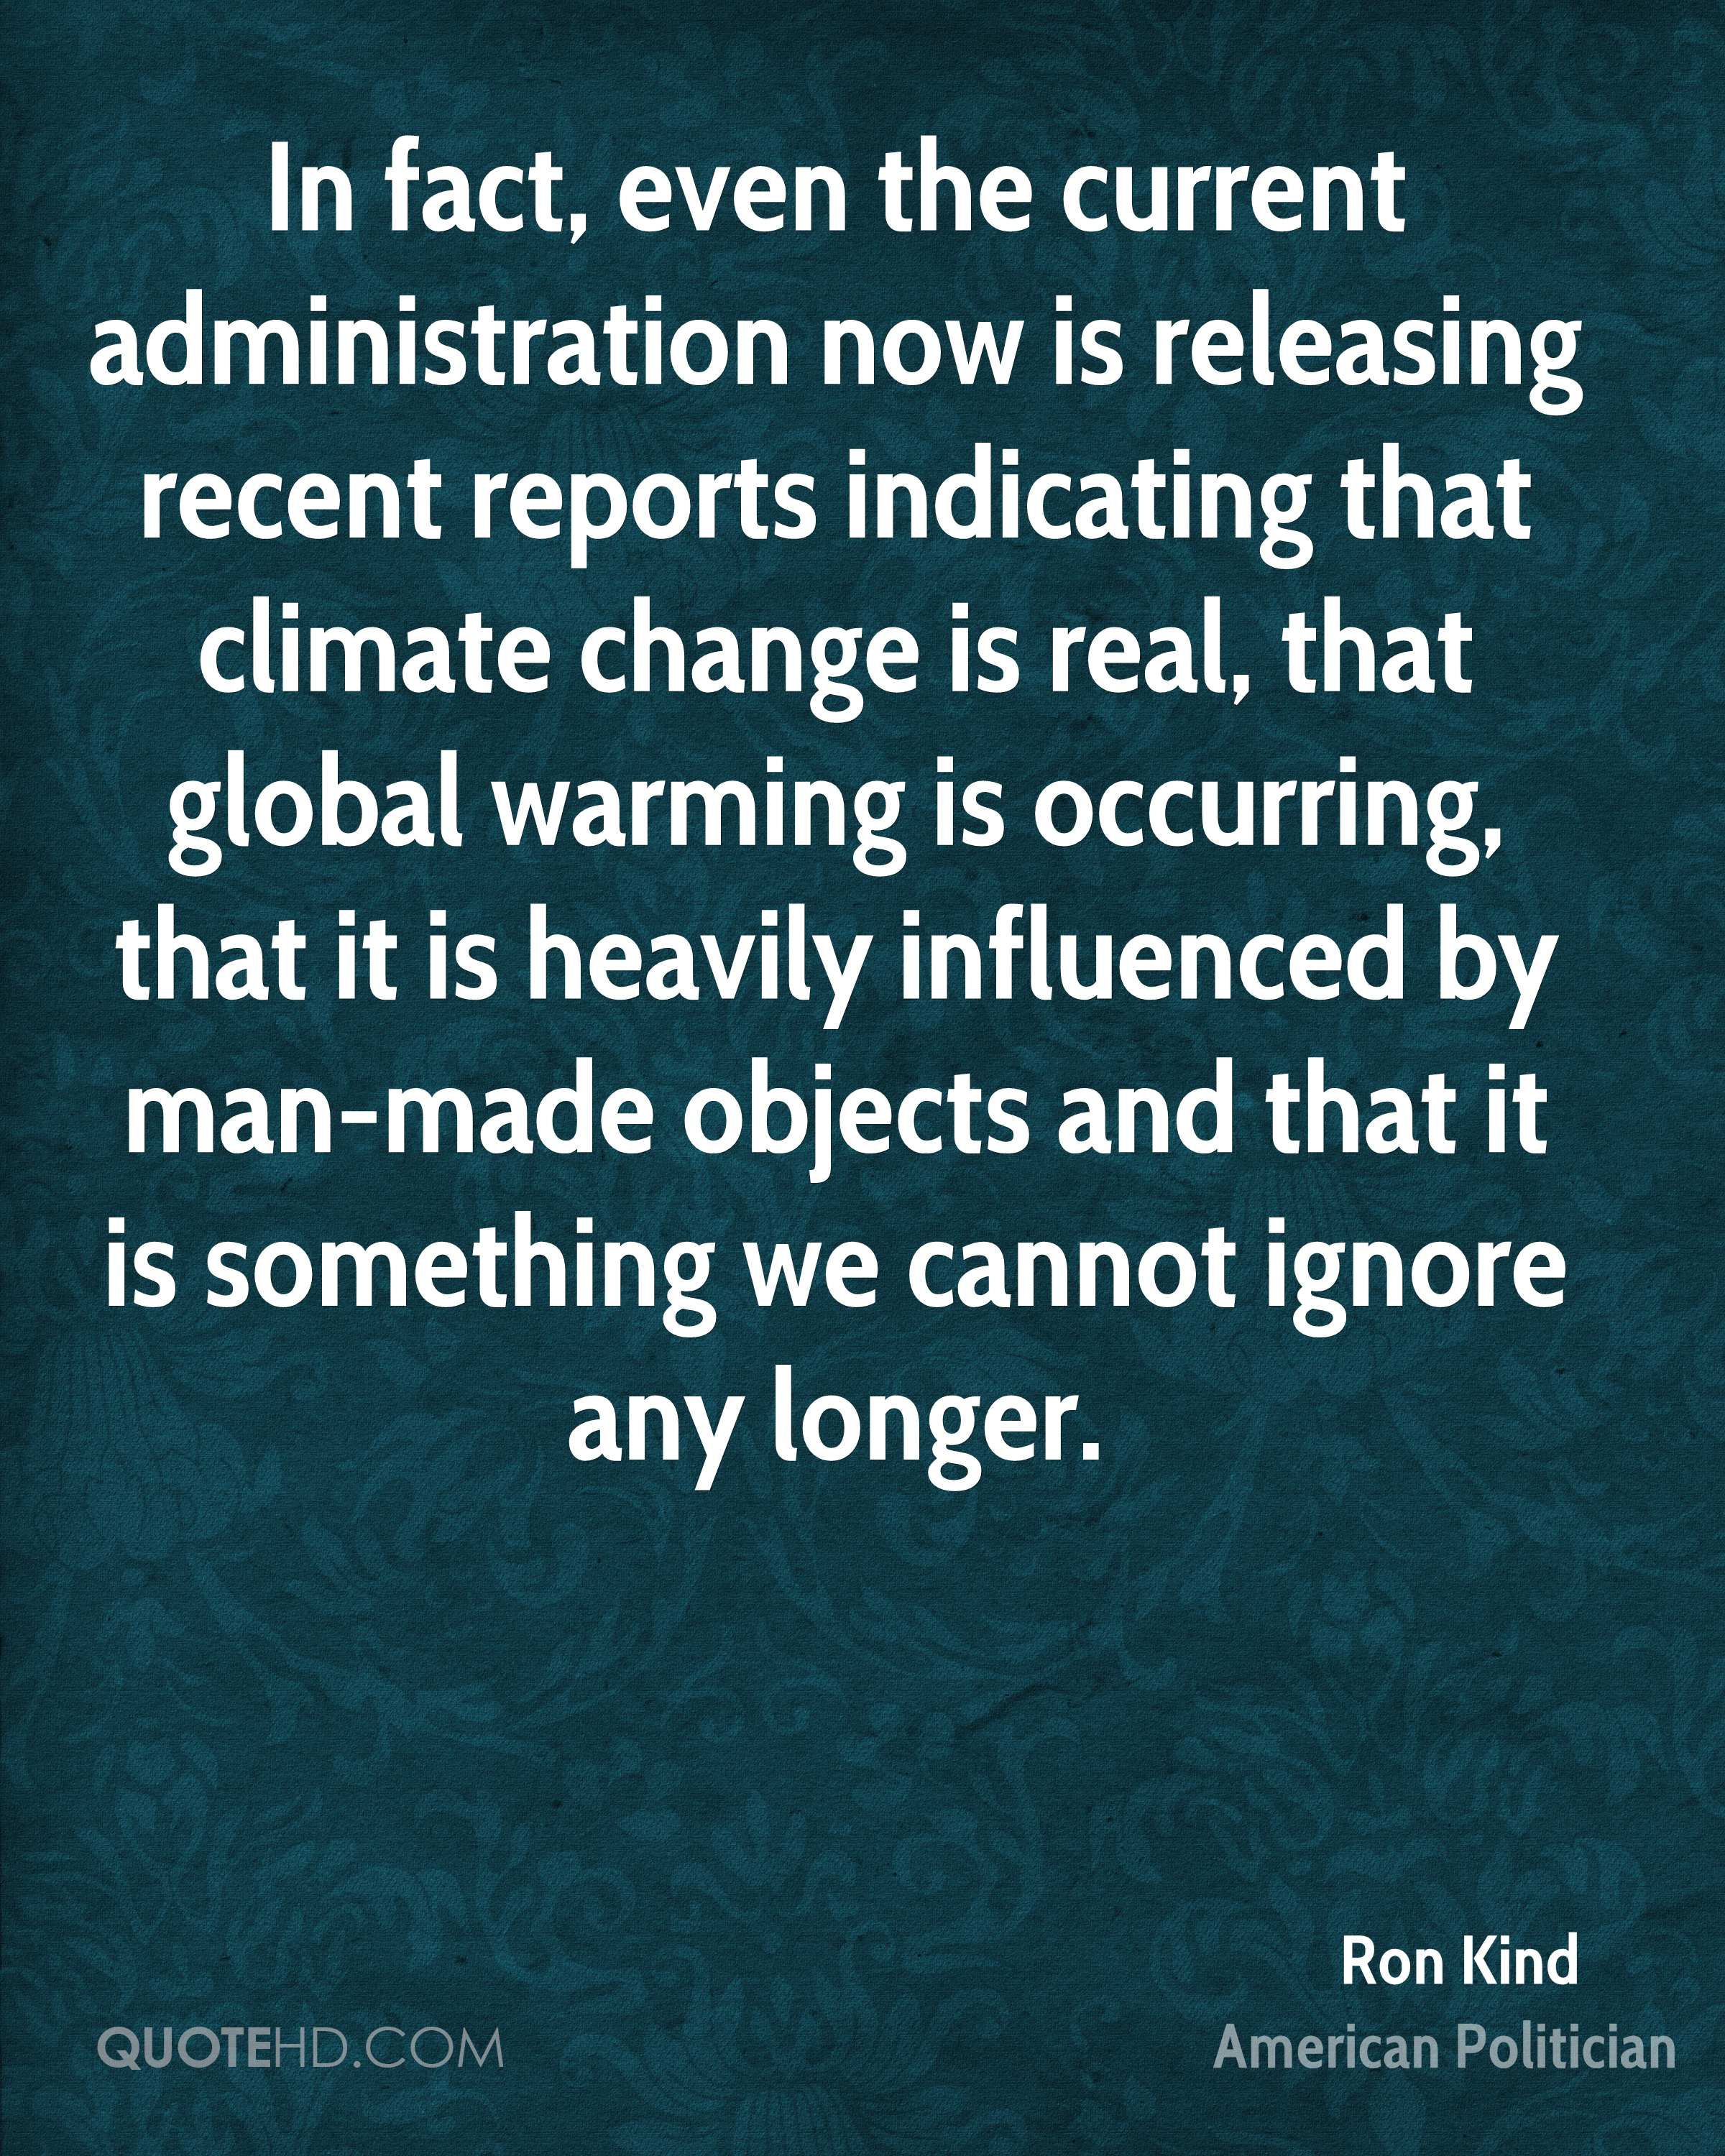 In fact, even the current administration now is releasing recent reports indicating that climate change is real, that global warming is occurring, that it is heavily influenced by man-made objects and that it is something we cannot ignore any longer.